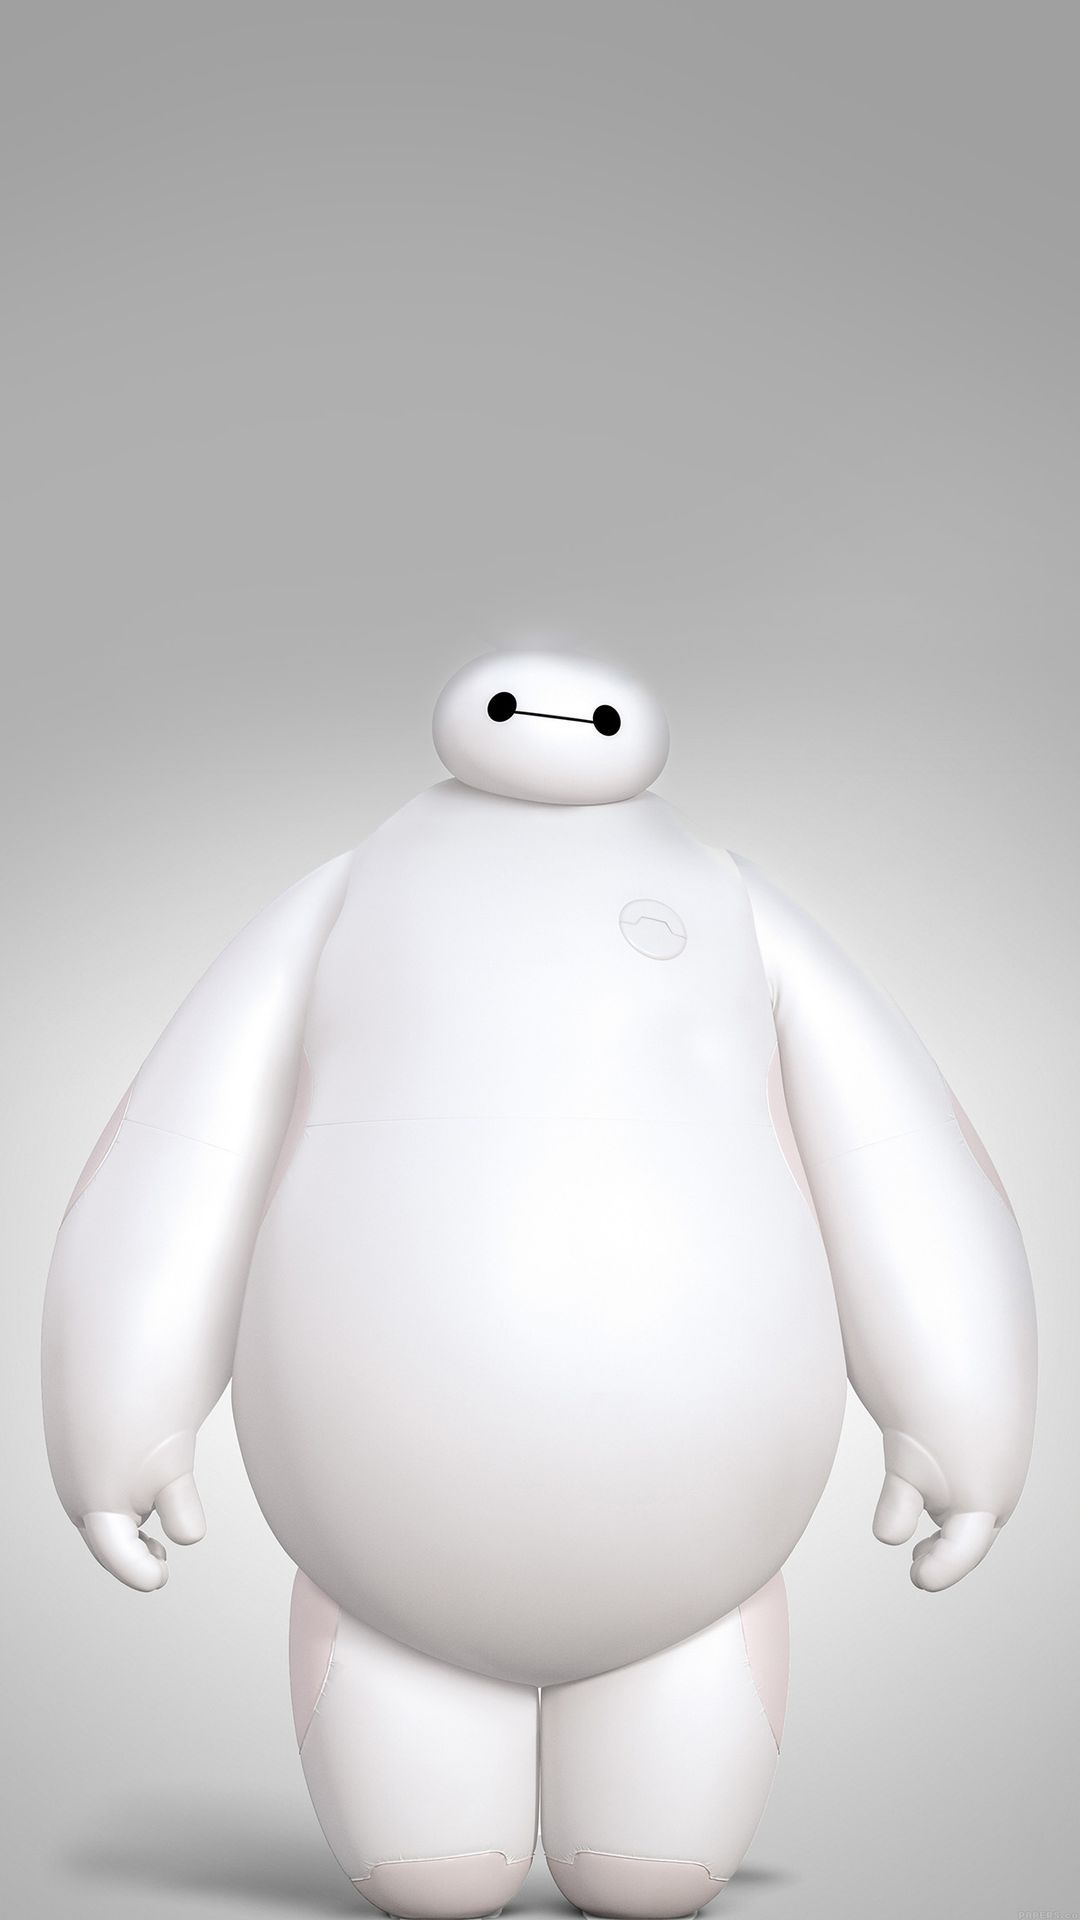 Disney Iphone Wallpapers Baymax Iphone 6 Wallpaper Hd